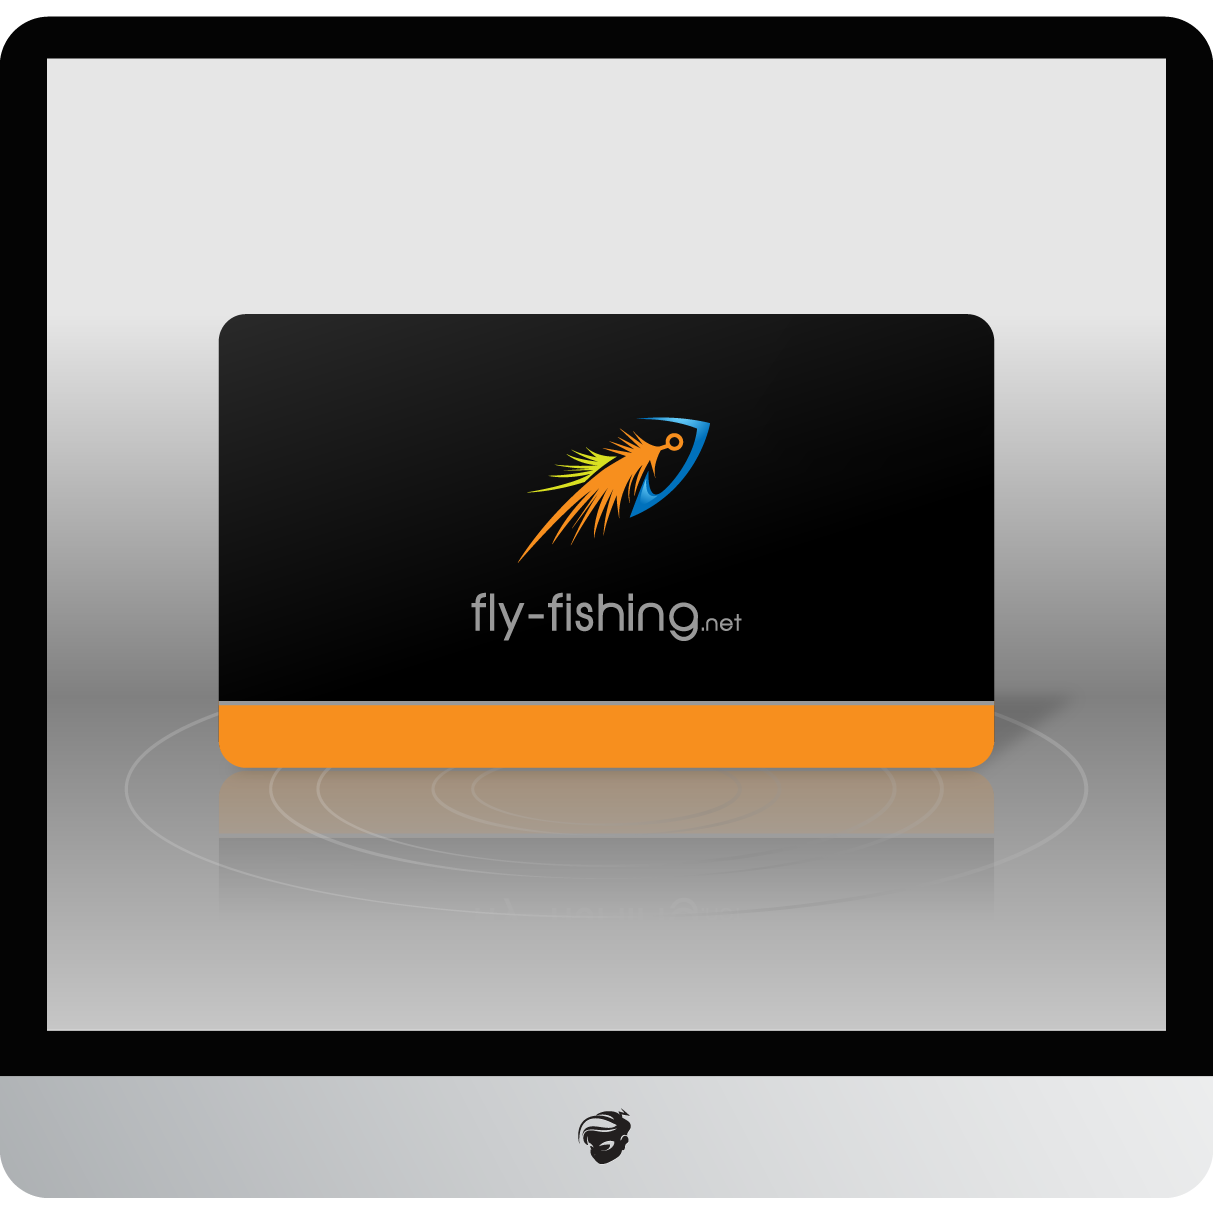 Logo Design by zesthar - Entry No. 142 in the Logo Design Contest Artistic Logo Design for fly-fishing.net.